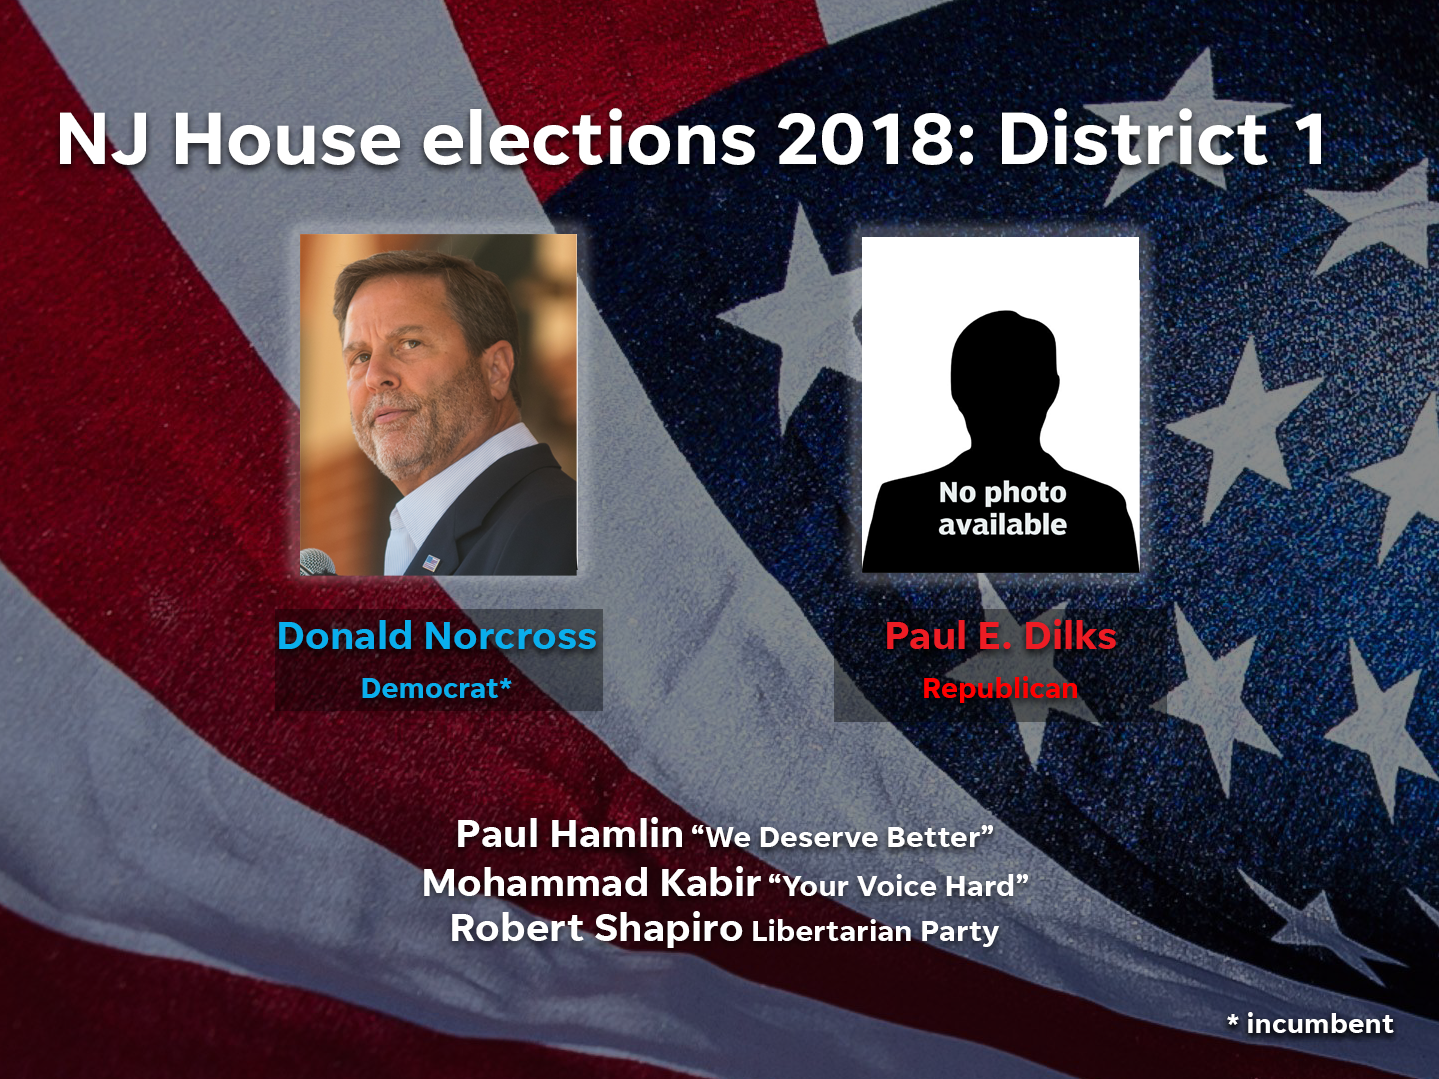 Donald Norcross (D) and Paul E. Dilks (R) are among the candidates running in District 1 in the 2018 NJ House elections. Archive